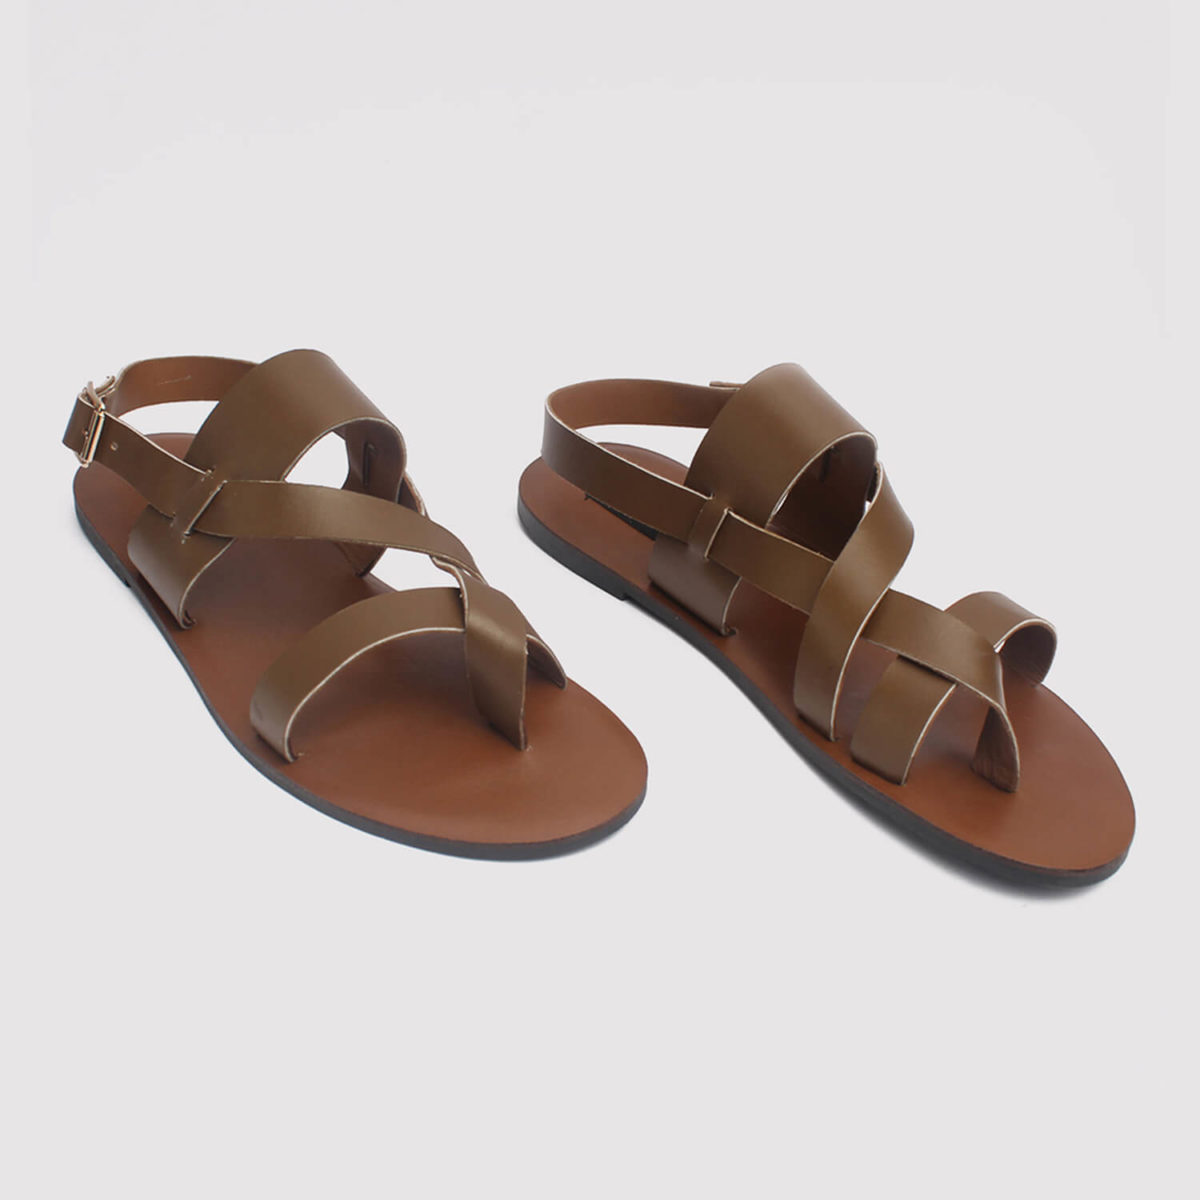 kuti sandals brown leather zorkle shoes in lagos nigeria